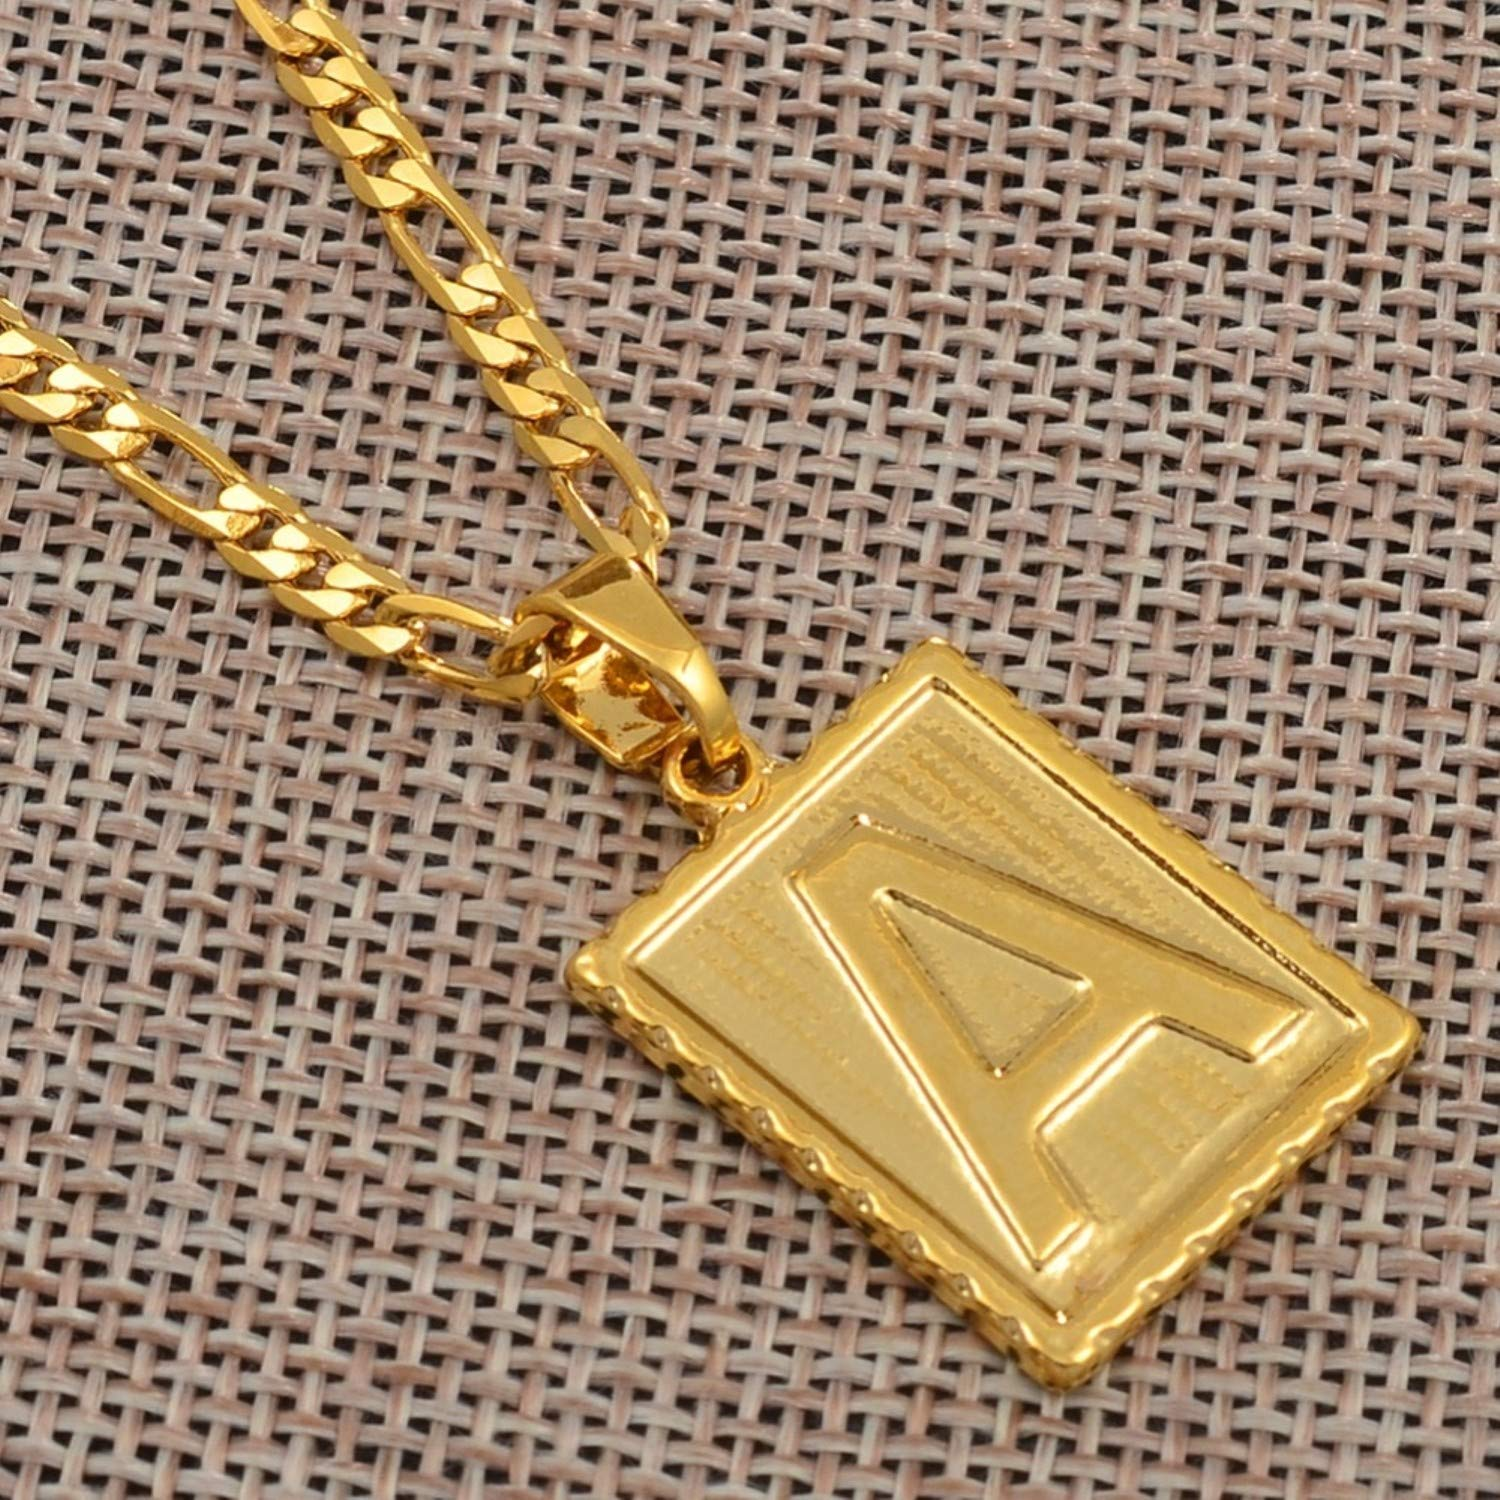 Pendant Necklace a Z Square Letters Necklace Gold Color Initial Pendant Chain for Men Women English Letter Alphabet Jewelry Gifts #104006 Choose Letter H 60cm by 3mm Chain